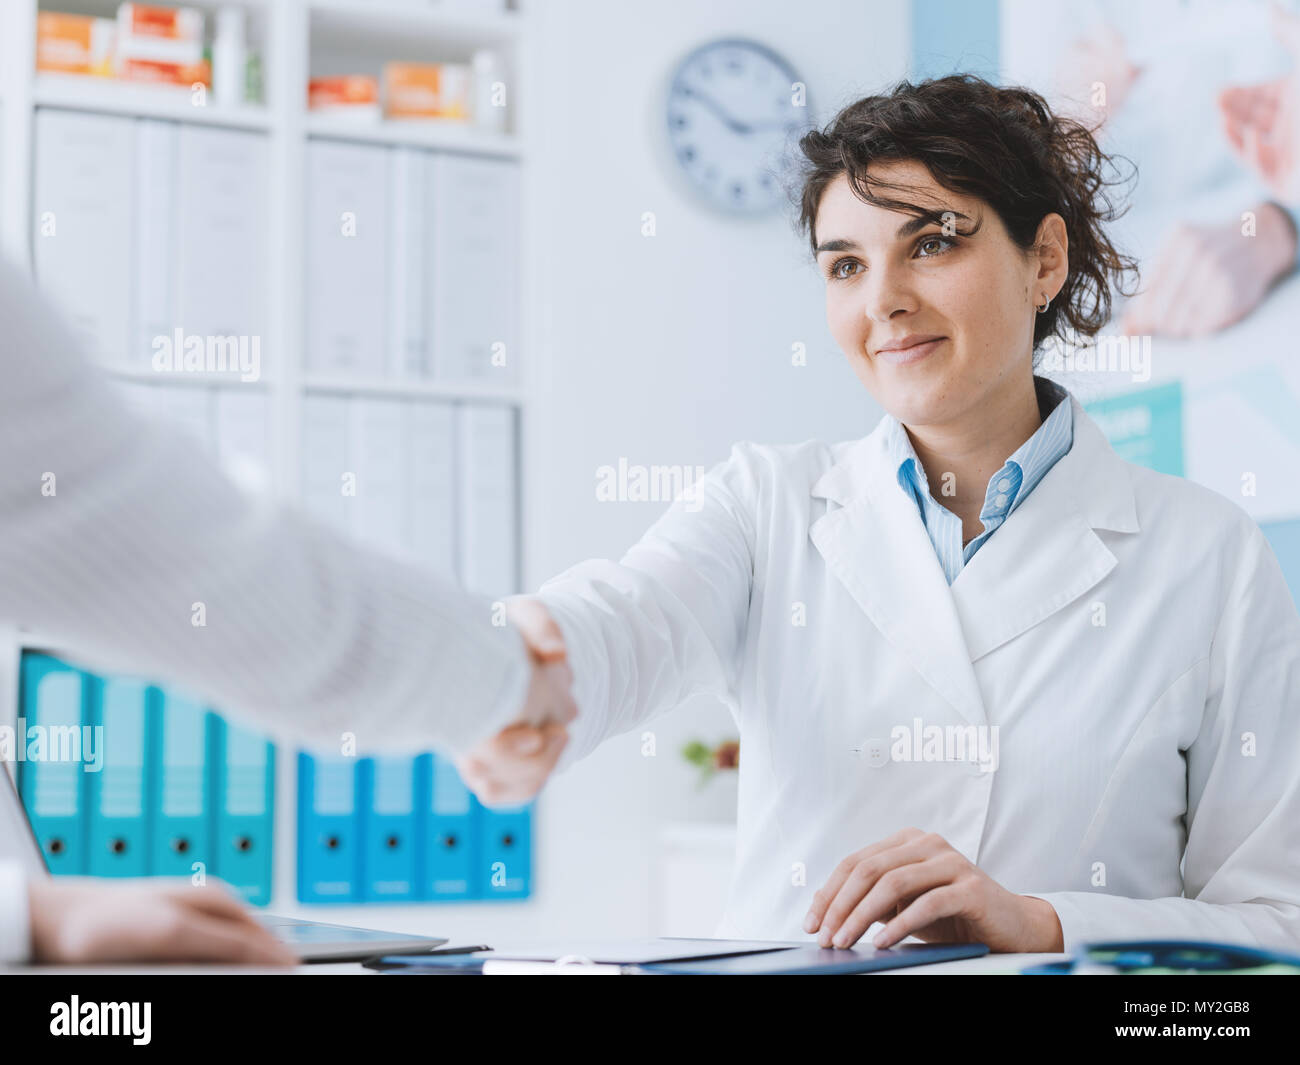 Smiling female doctor greeting a patient and shaking hands, they are having a meeting in the office - Stock Image